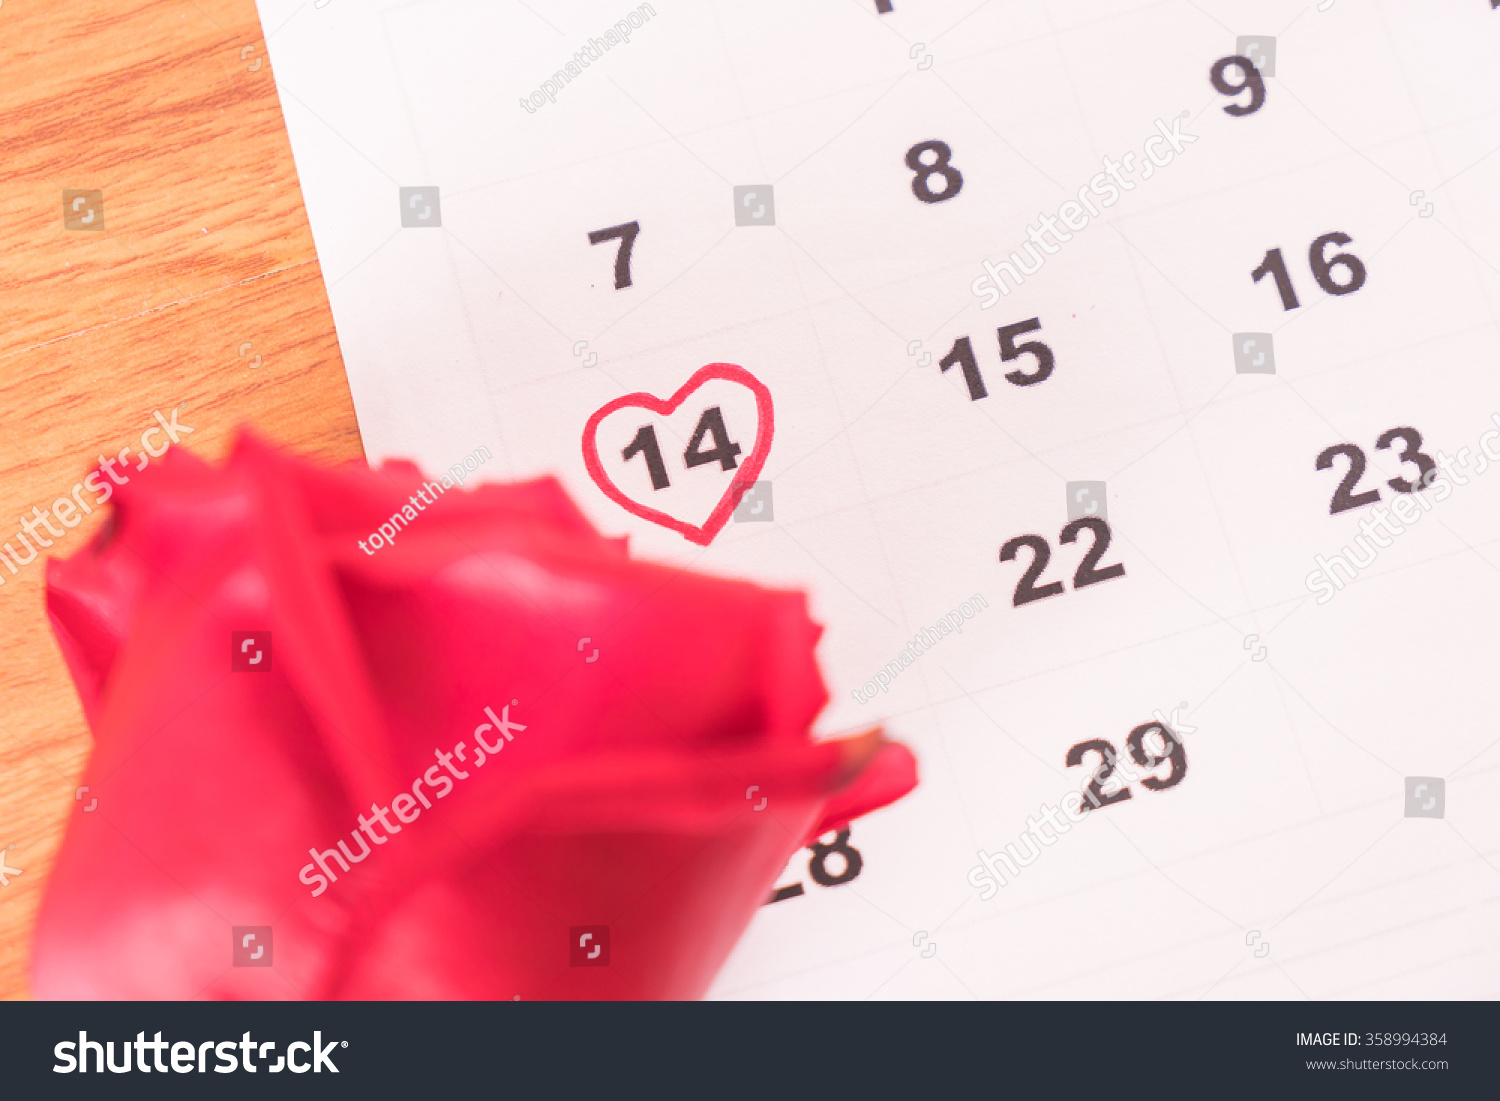 Calendar Rose Day : Red rose on calendar date february stock photo